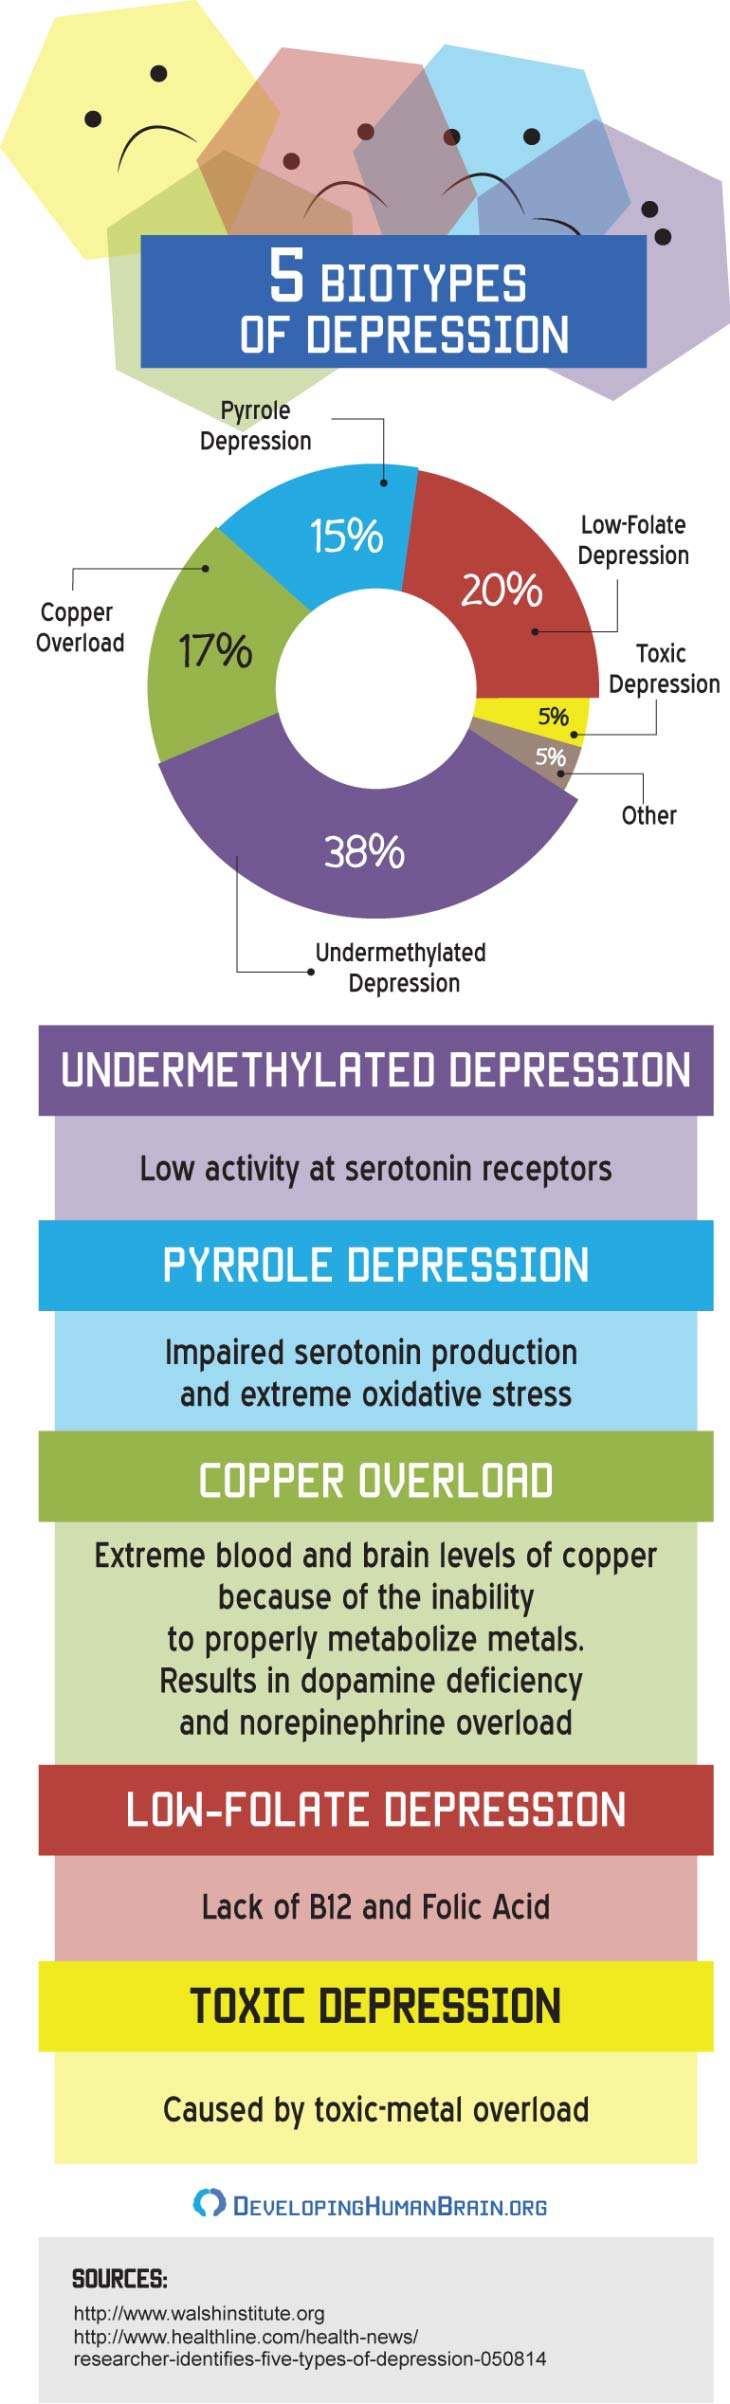 five biotypes of depression infographic